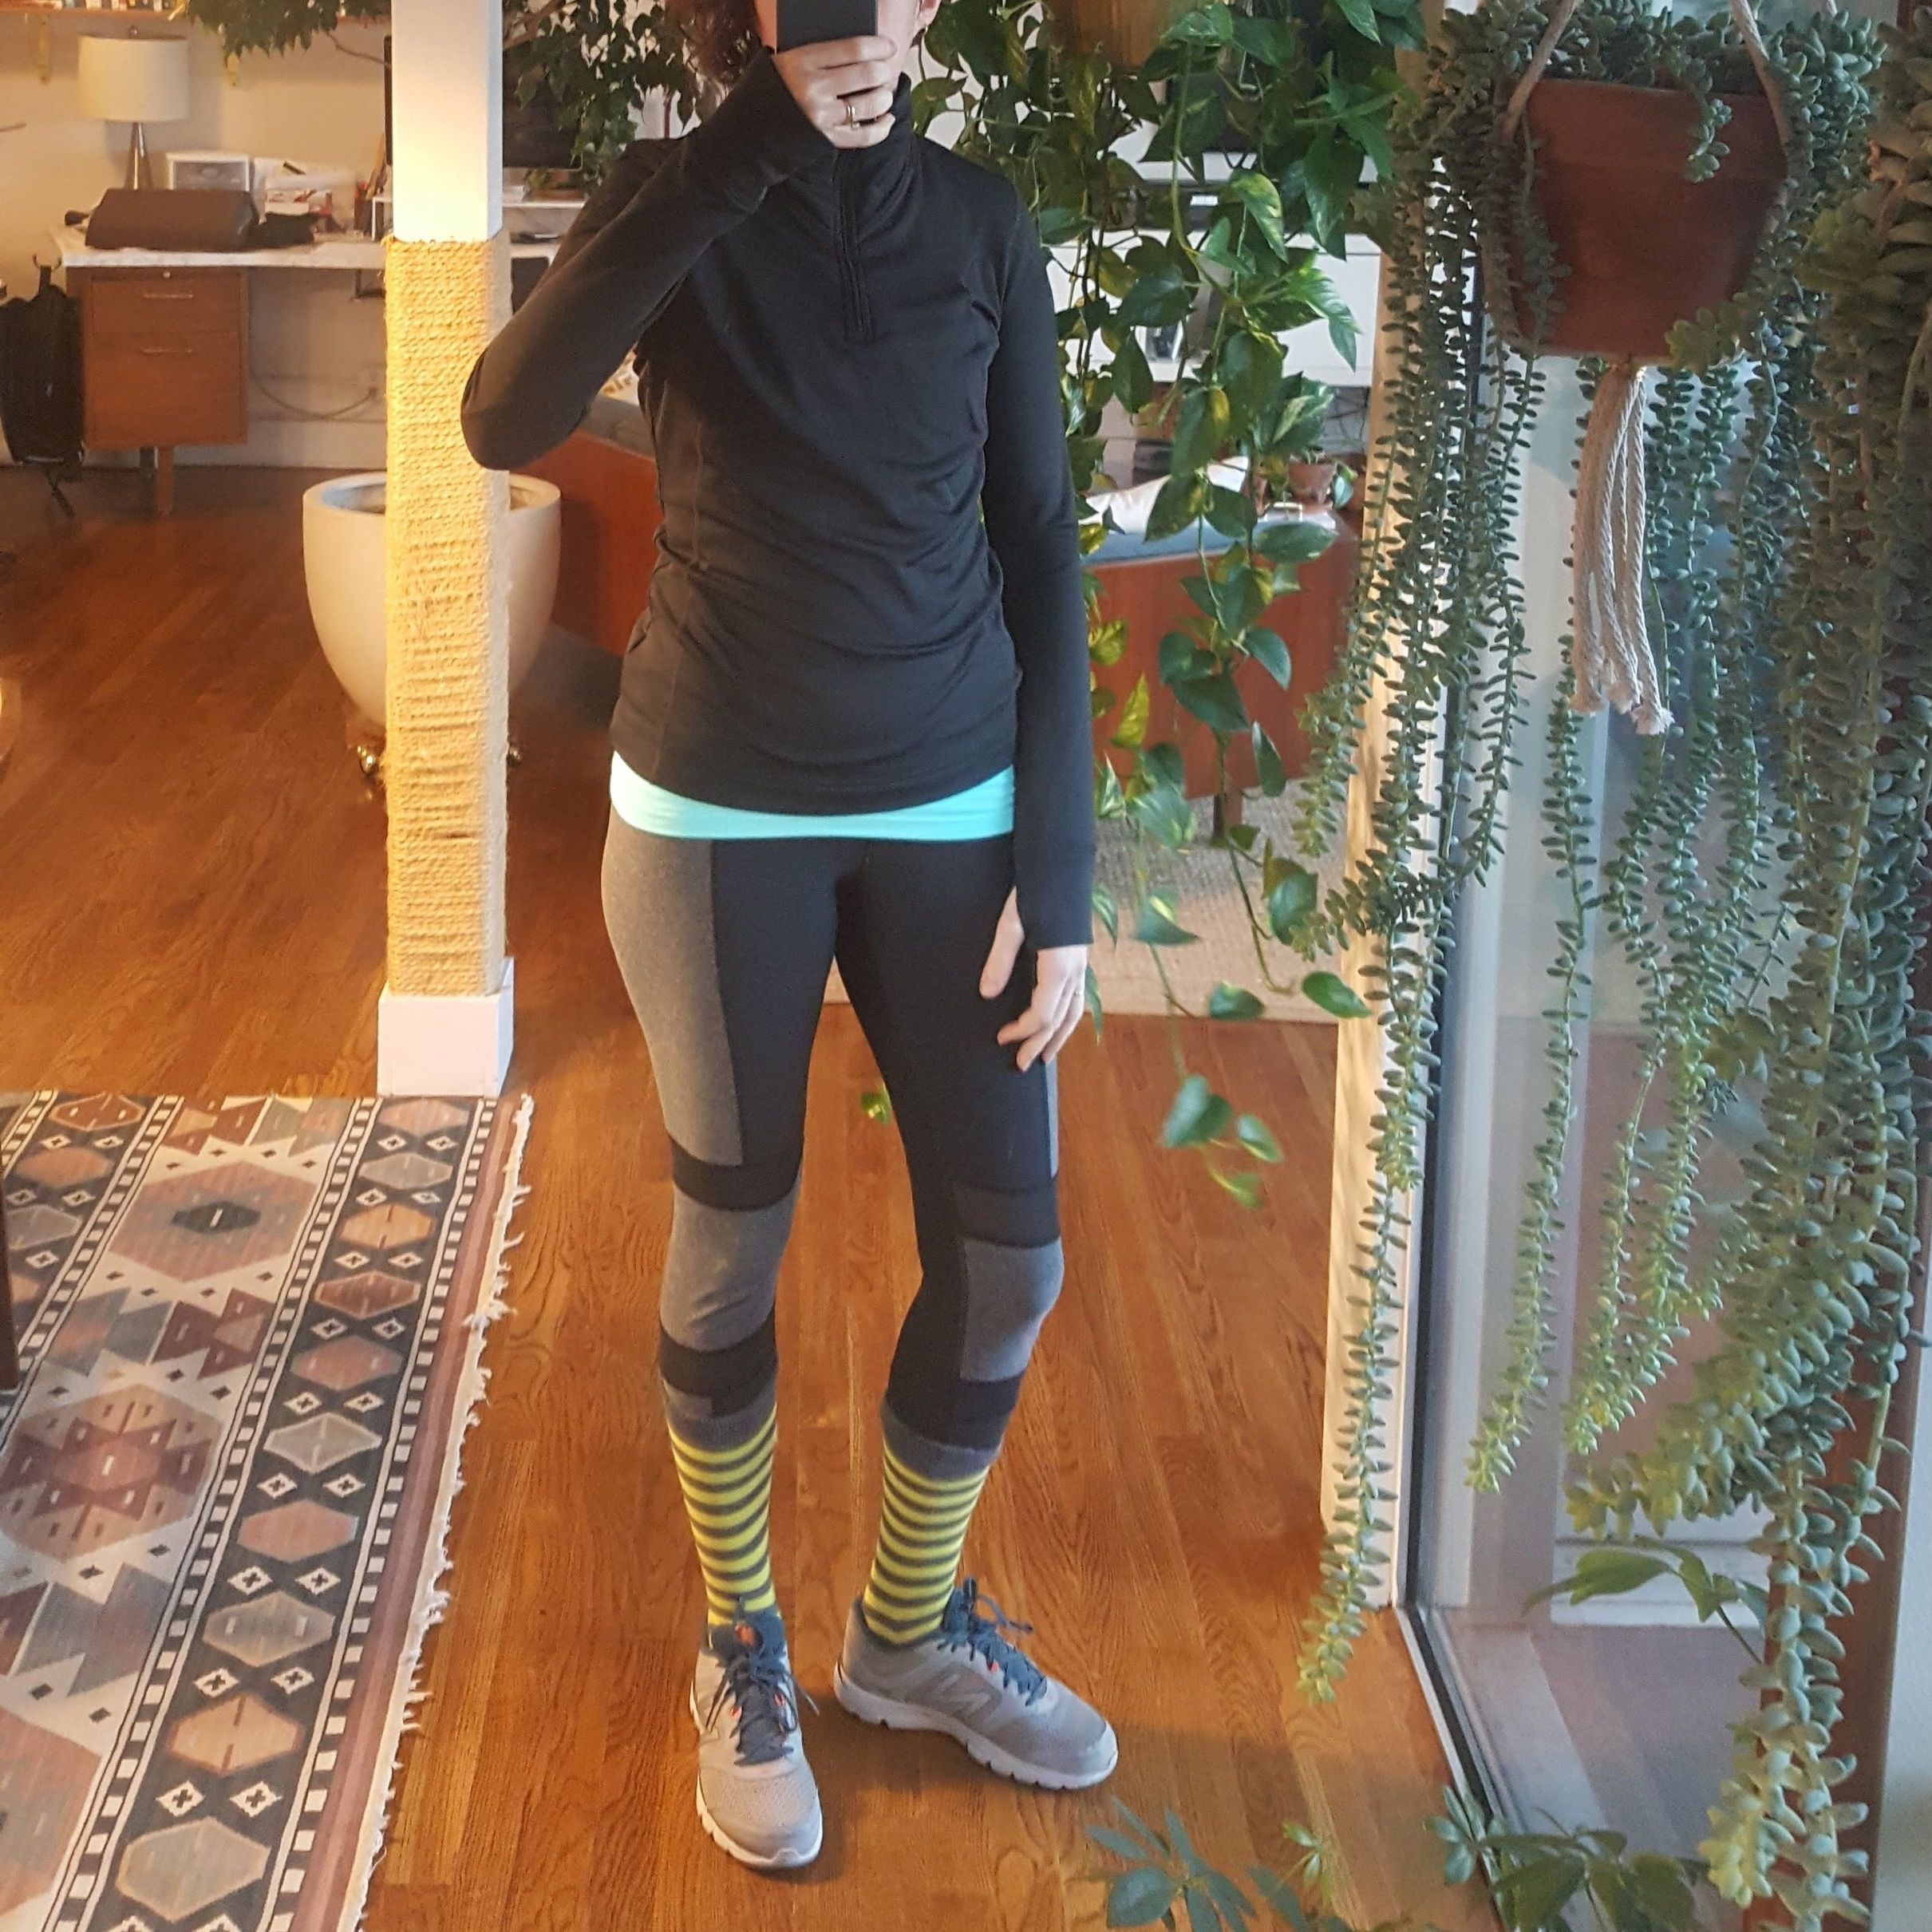 Went out in the cold this morning to do some jump rope. - A new beginning for fitness + me?